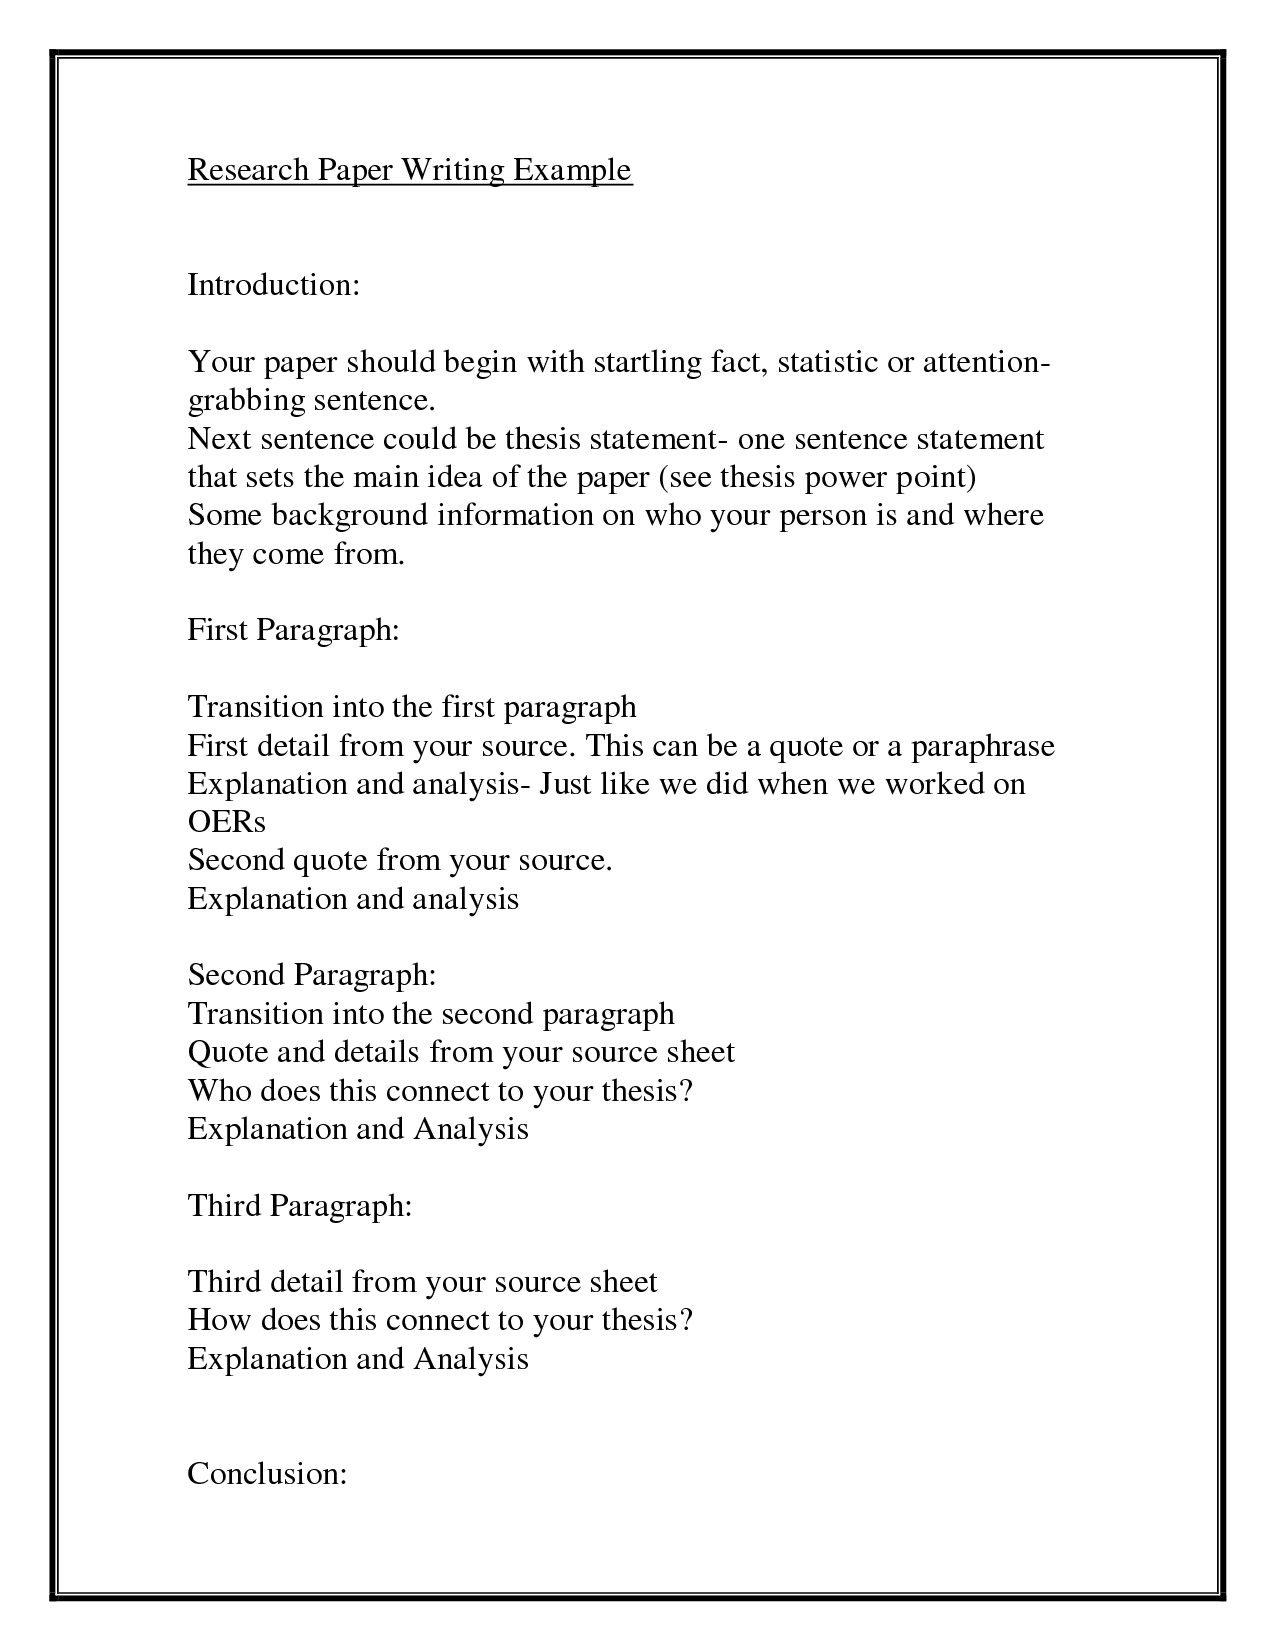 Literature review on employee management system